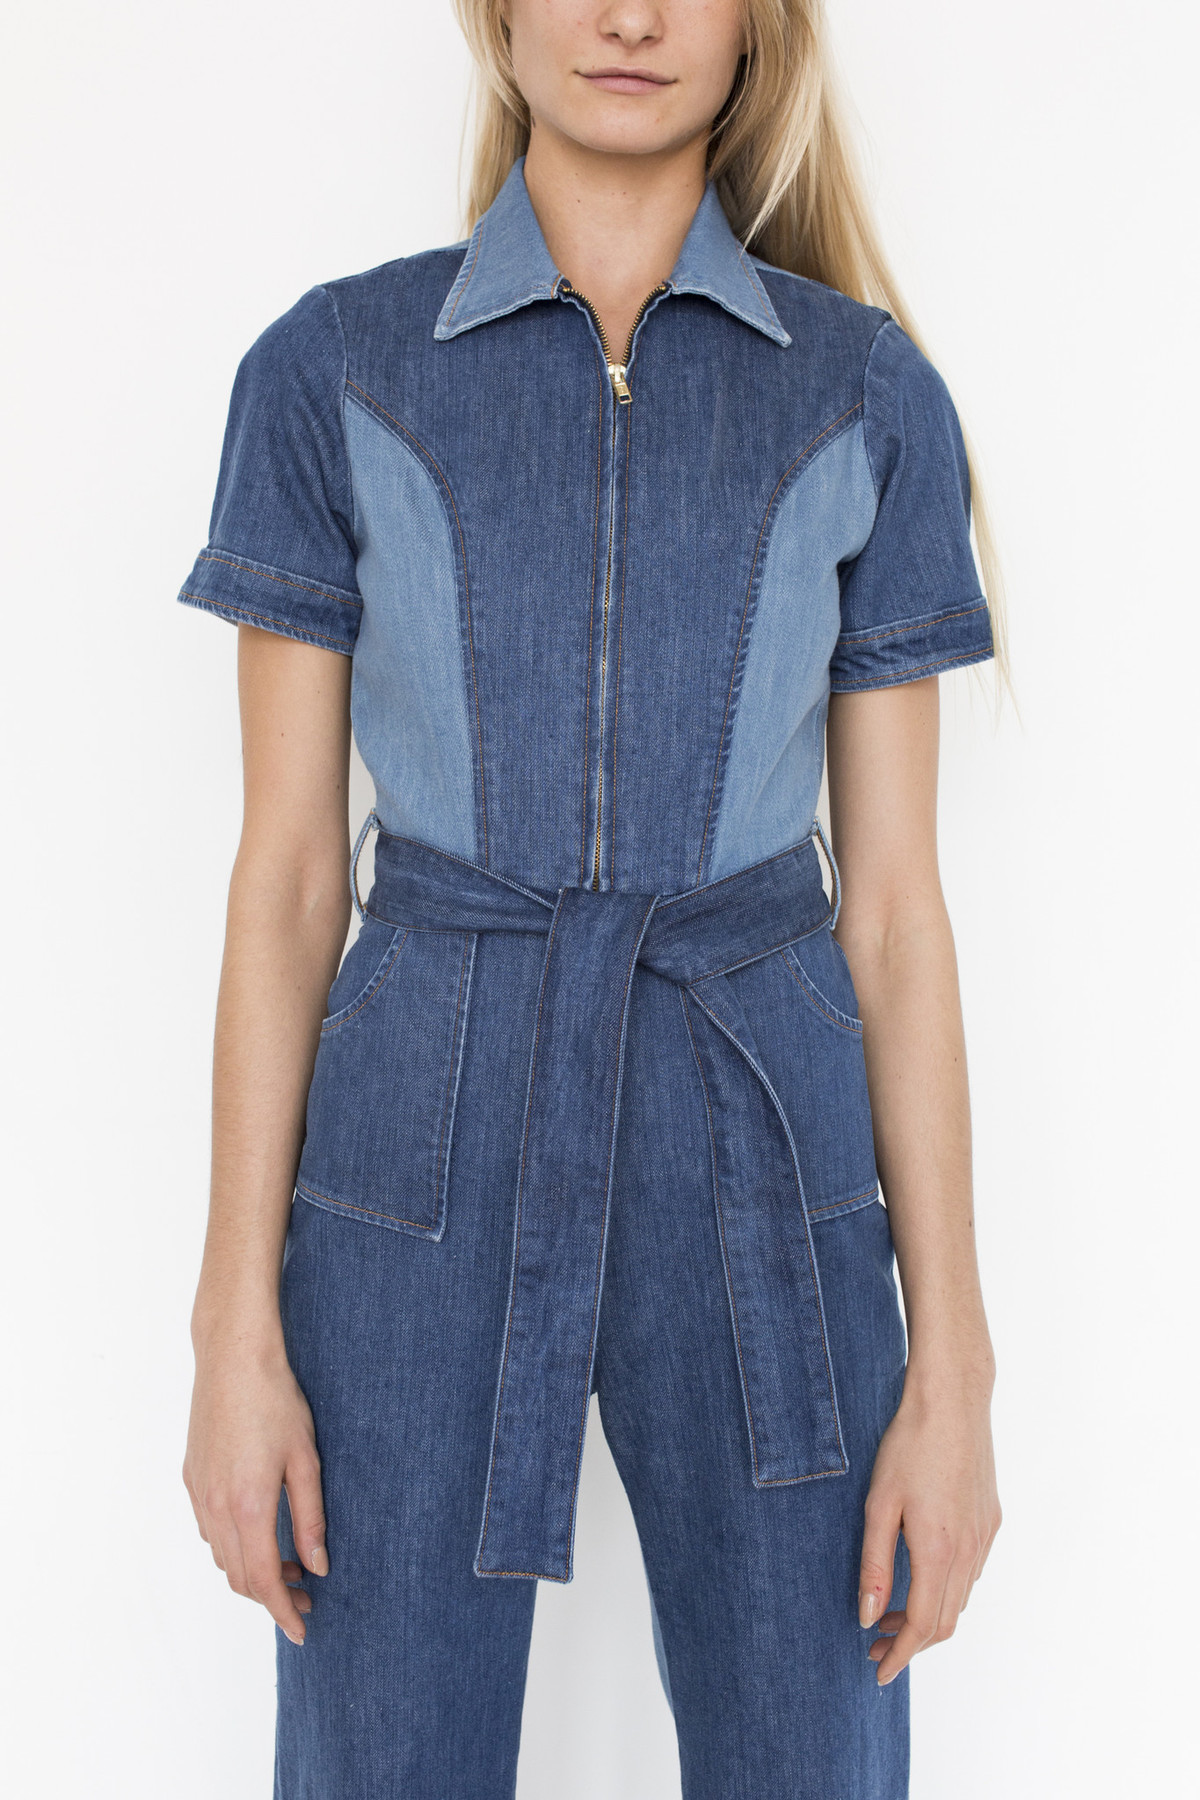 8aa5da6b4 Stoned Immaculate Denim Blue Jean Baby Jumpsuit